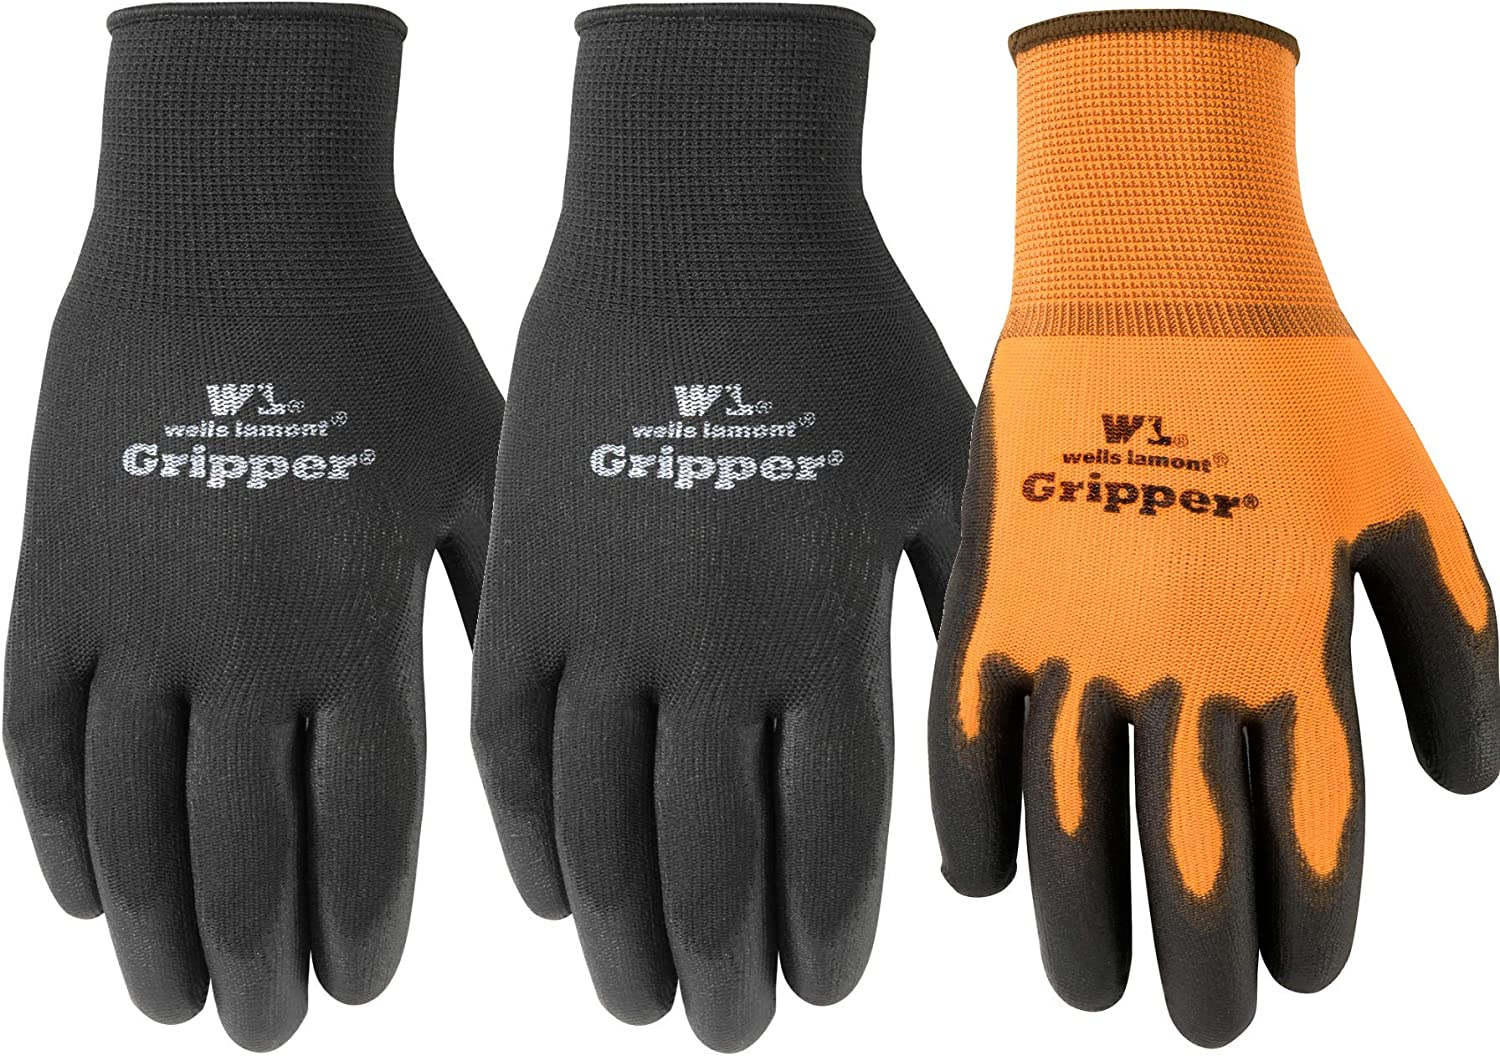 3 Pair Pack Ultimate Gripper Work Gloves with PU-Coating, Large (Wells Lamont 559LF)